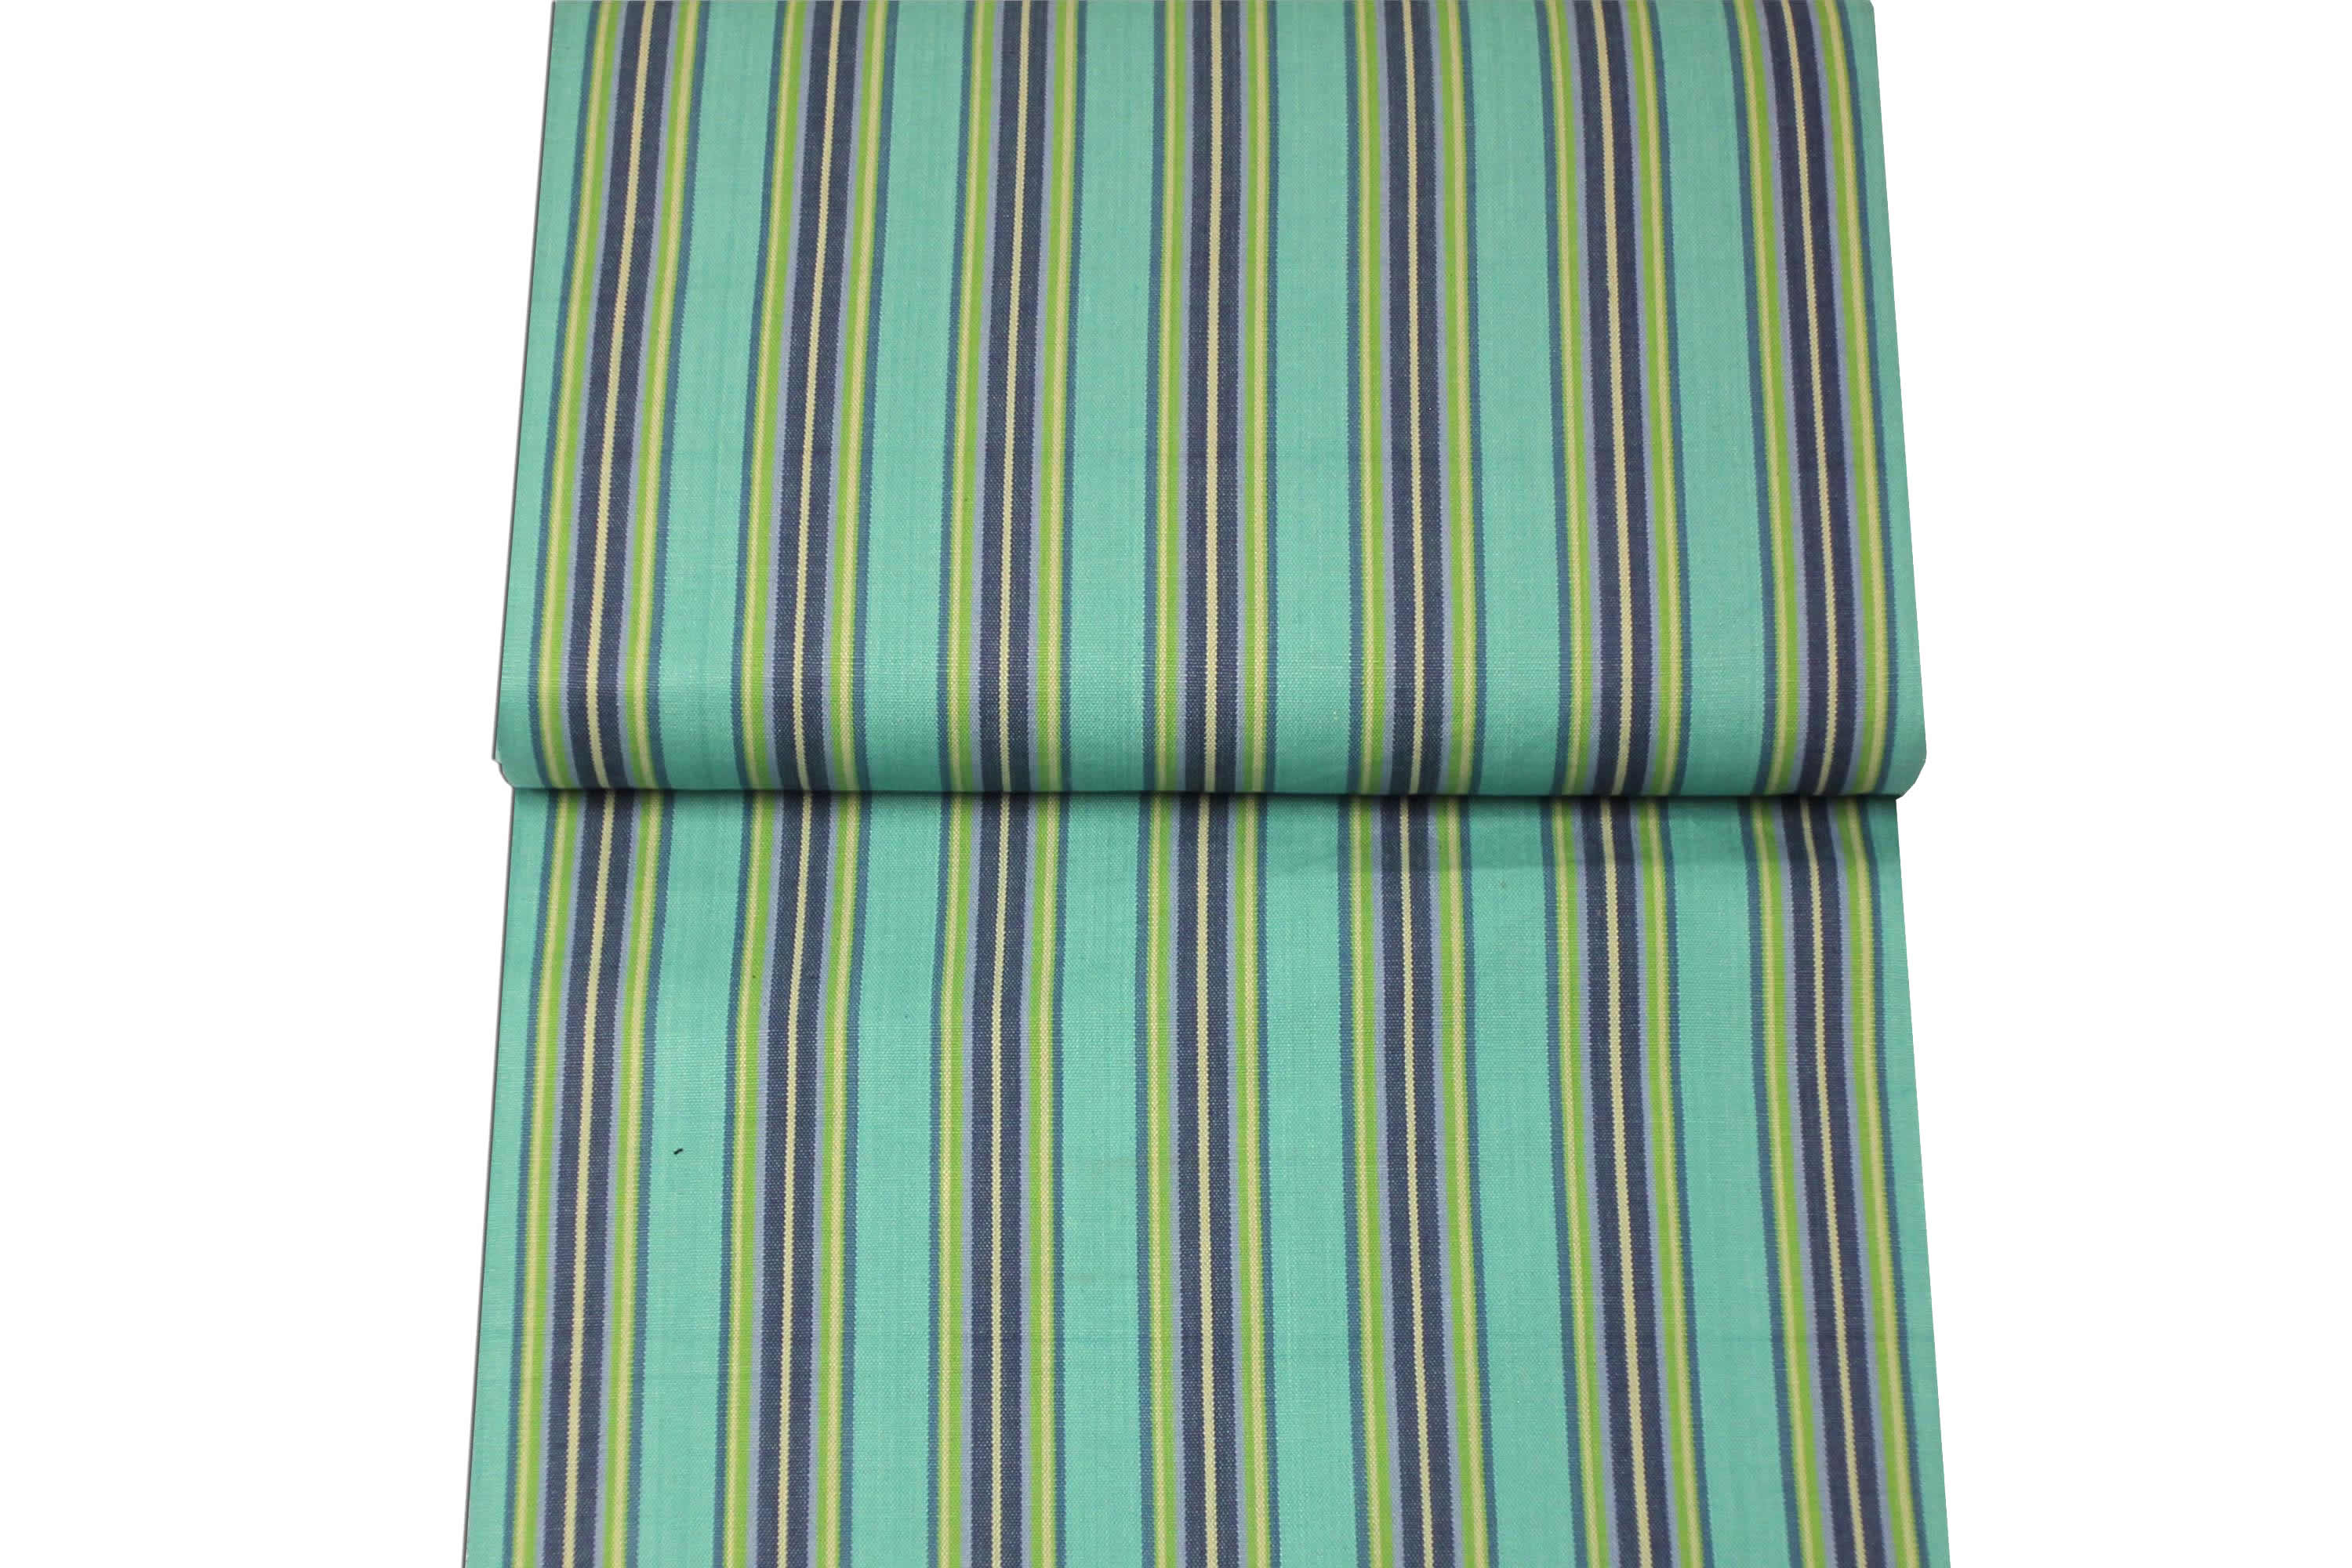 Dark Blue, Green and Cream Stripe Replacement Deck Chair Sling - Fencing